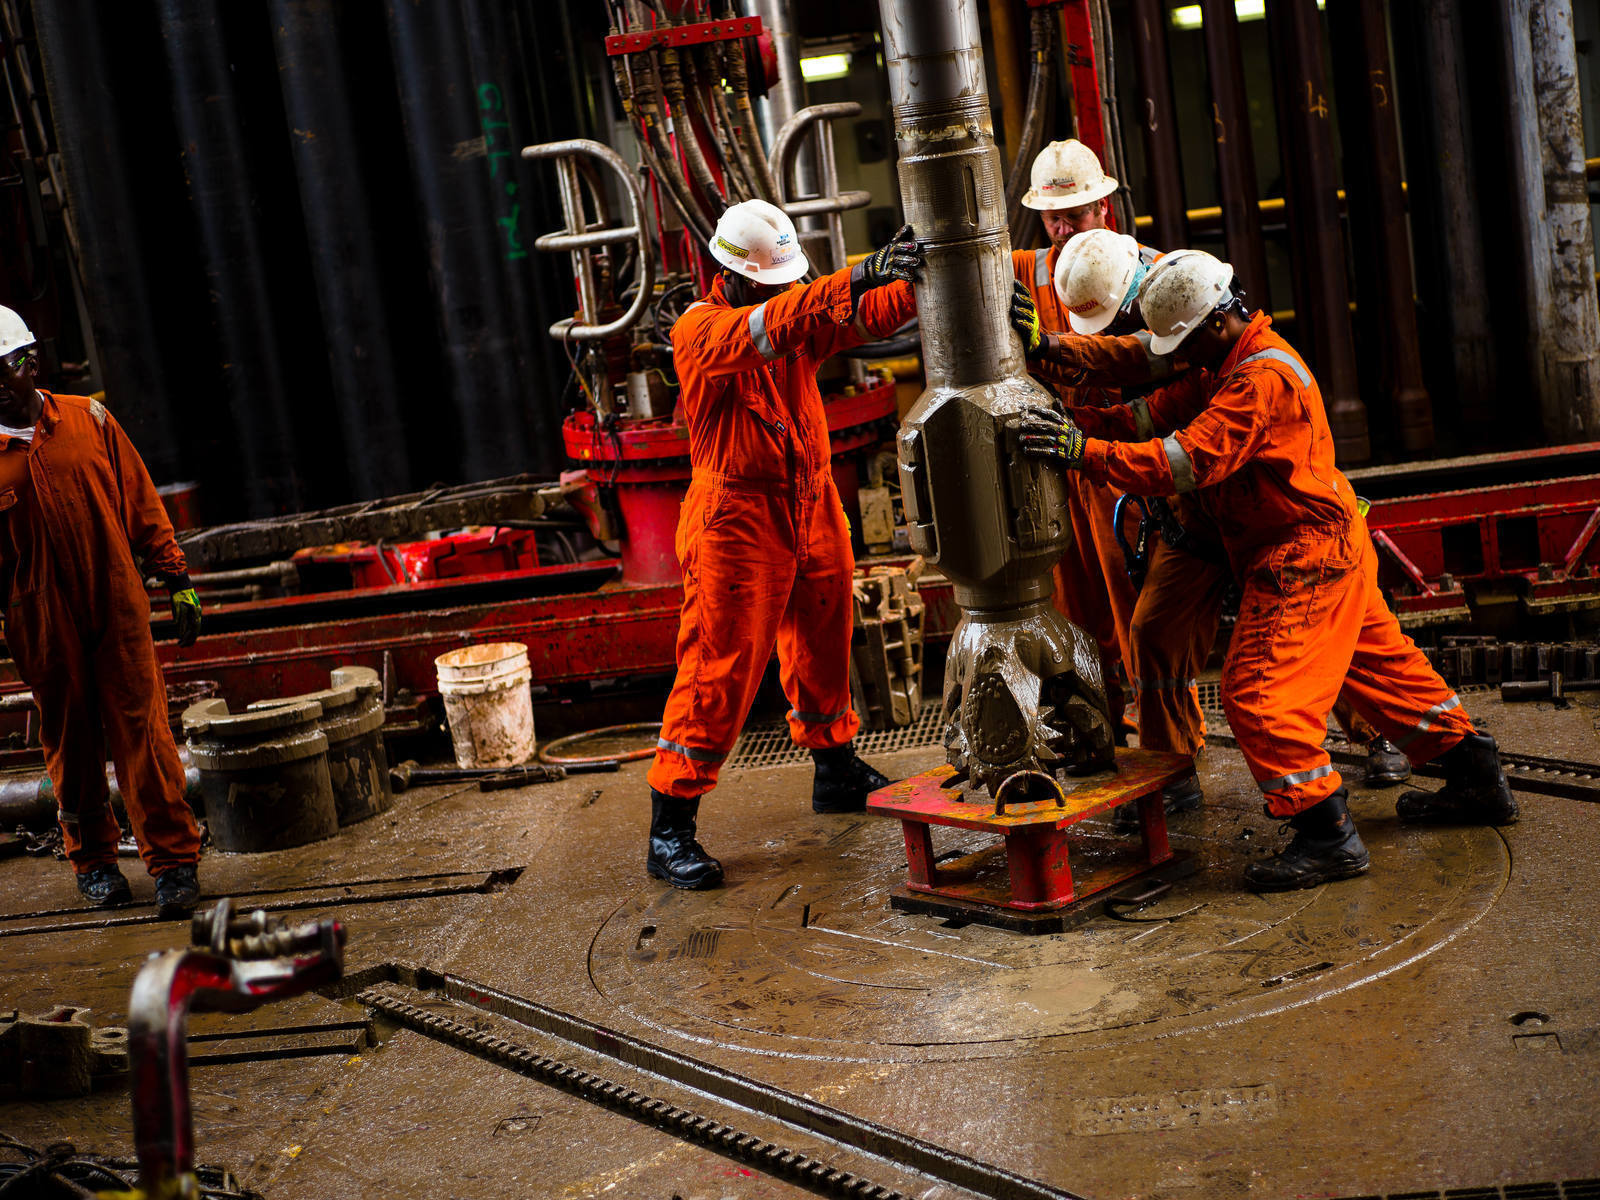 Oil and Gas Exploration & Production: Total's Areas of